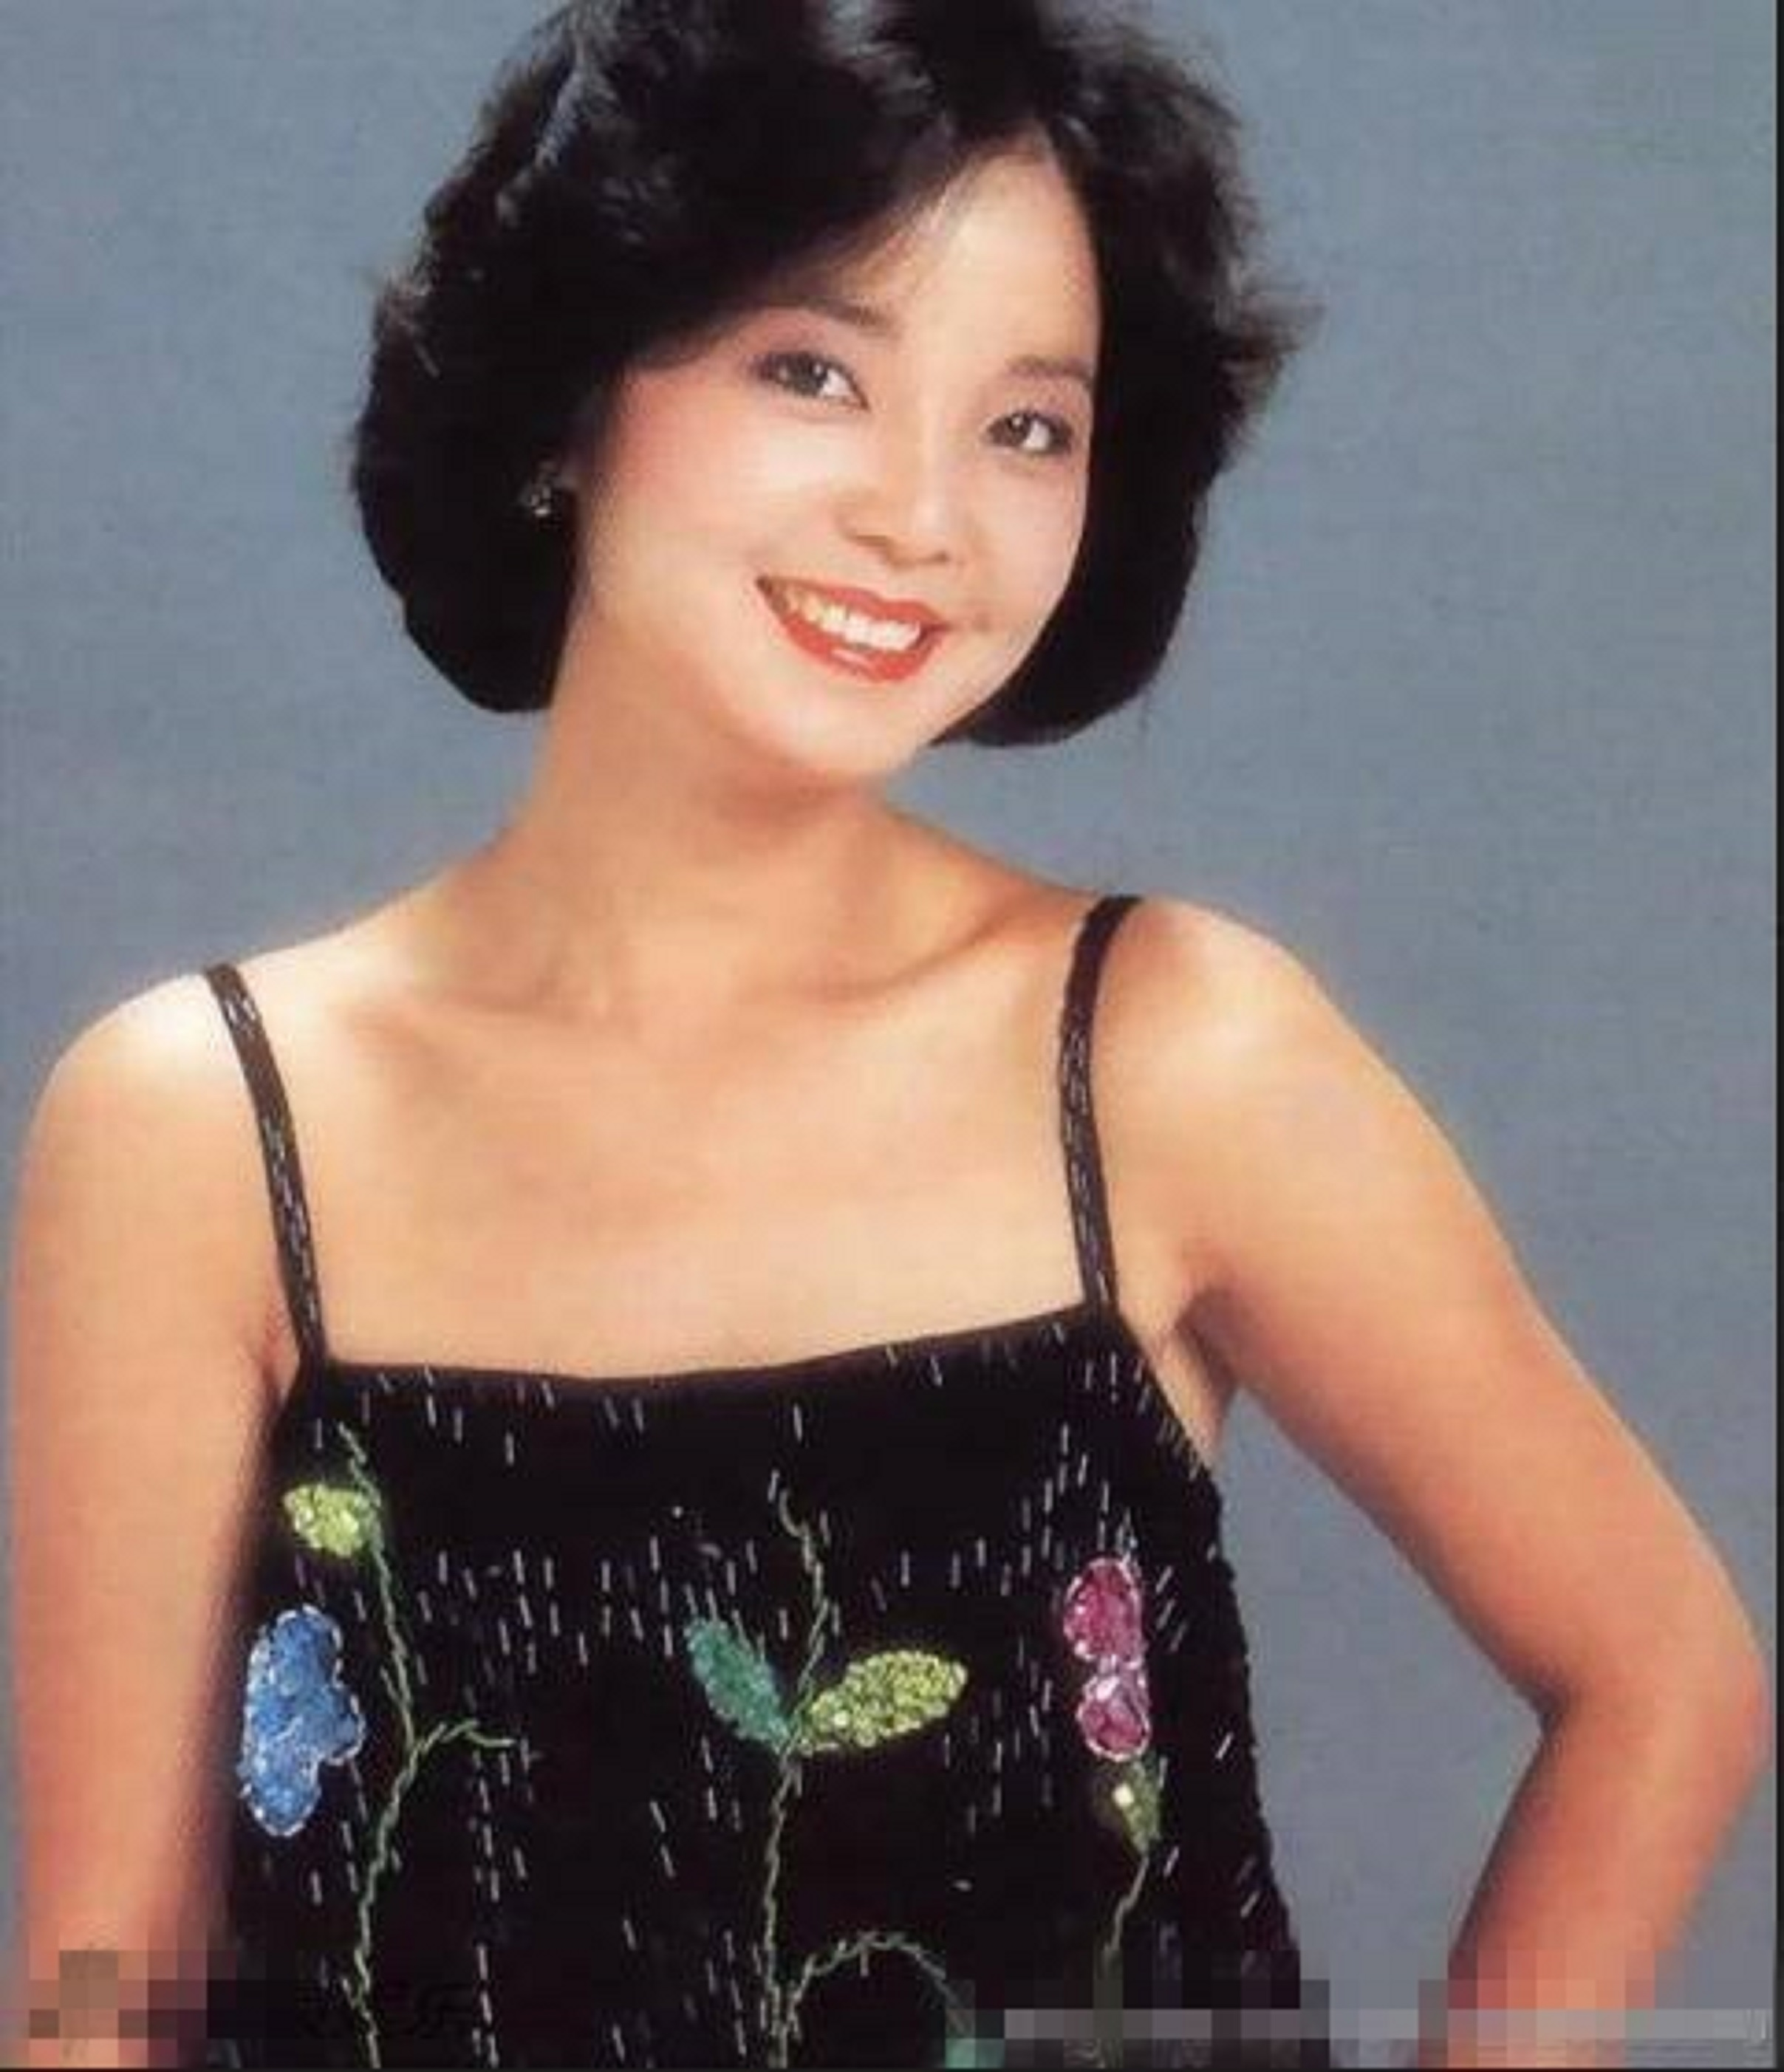 Qing Ren Yi Xiao 情人一笑 A Lover's Smile 歌詞 With Pinyin By Deng Li Jun 邓丽君 Teresa Teng